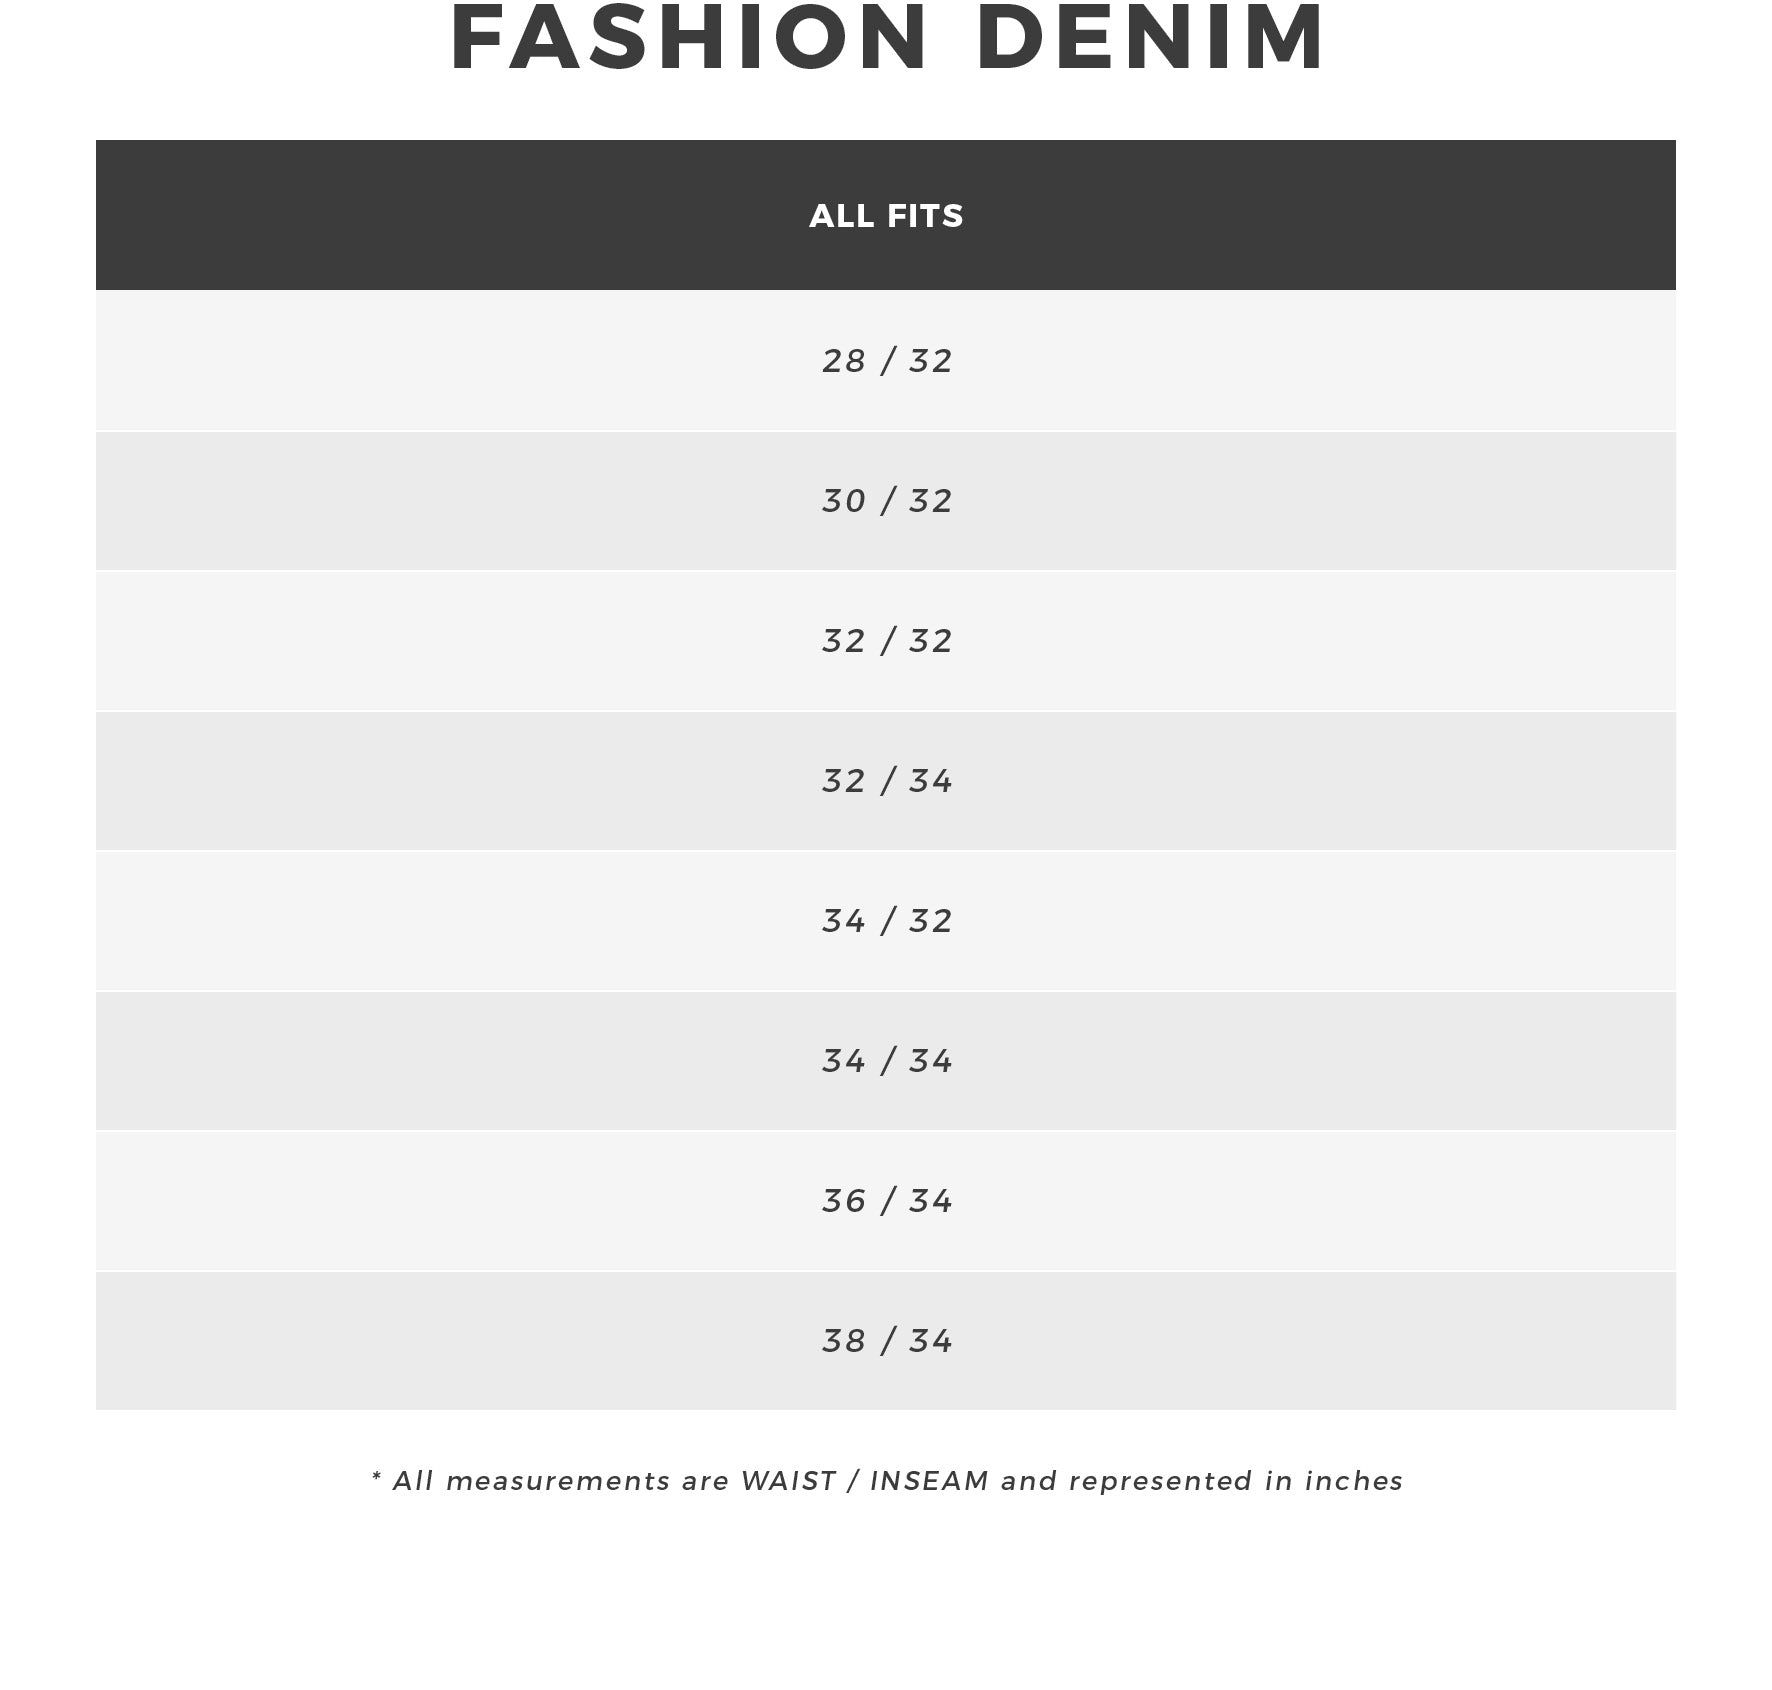 Urban Planet - Men's Fashion Denim Size Guide